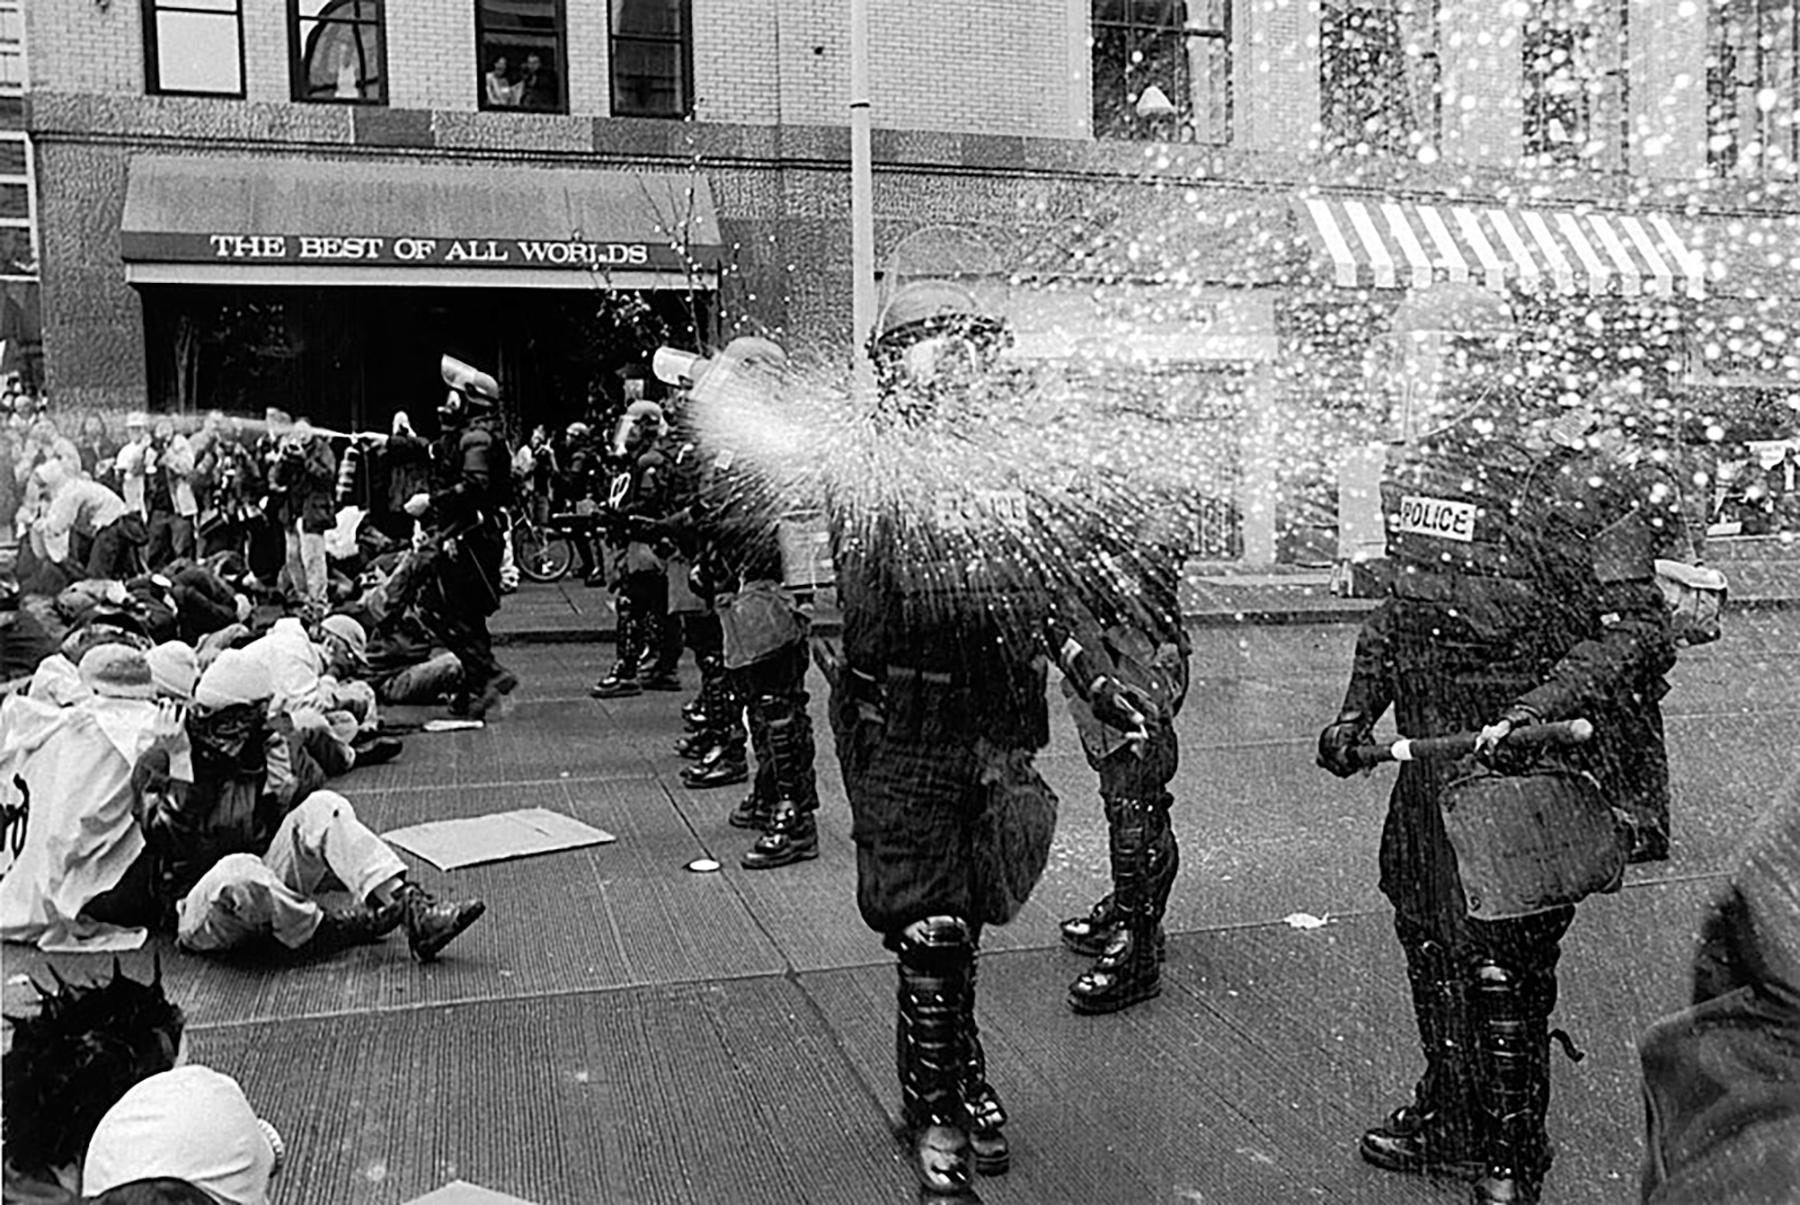 A Short Violent History Of Puget Sound Uprisings Protests And Riots Crosscut